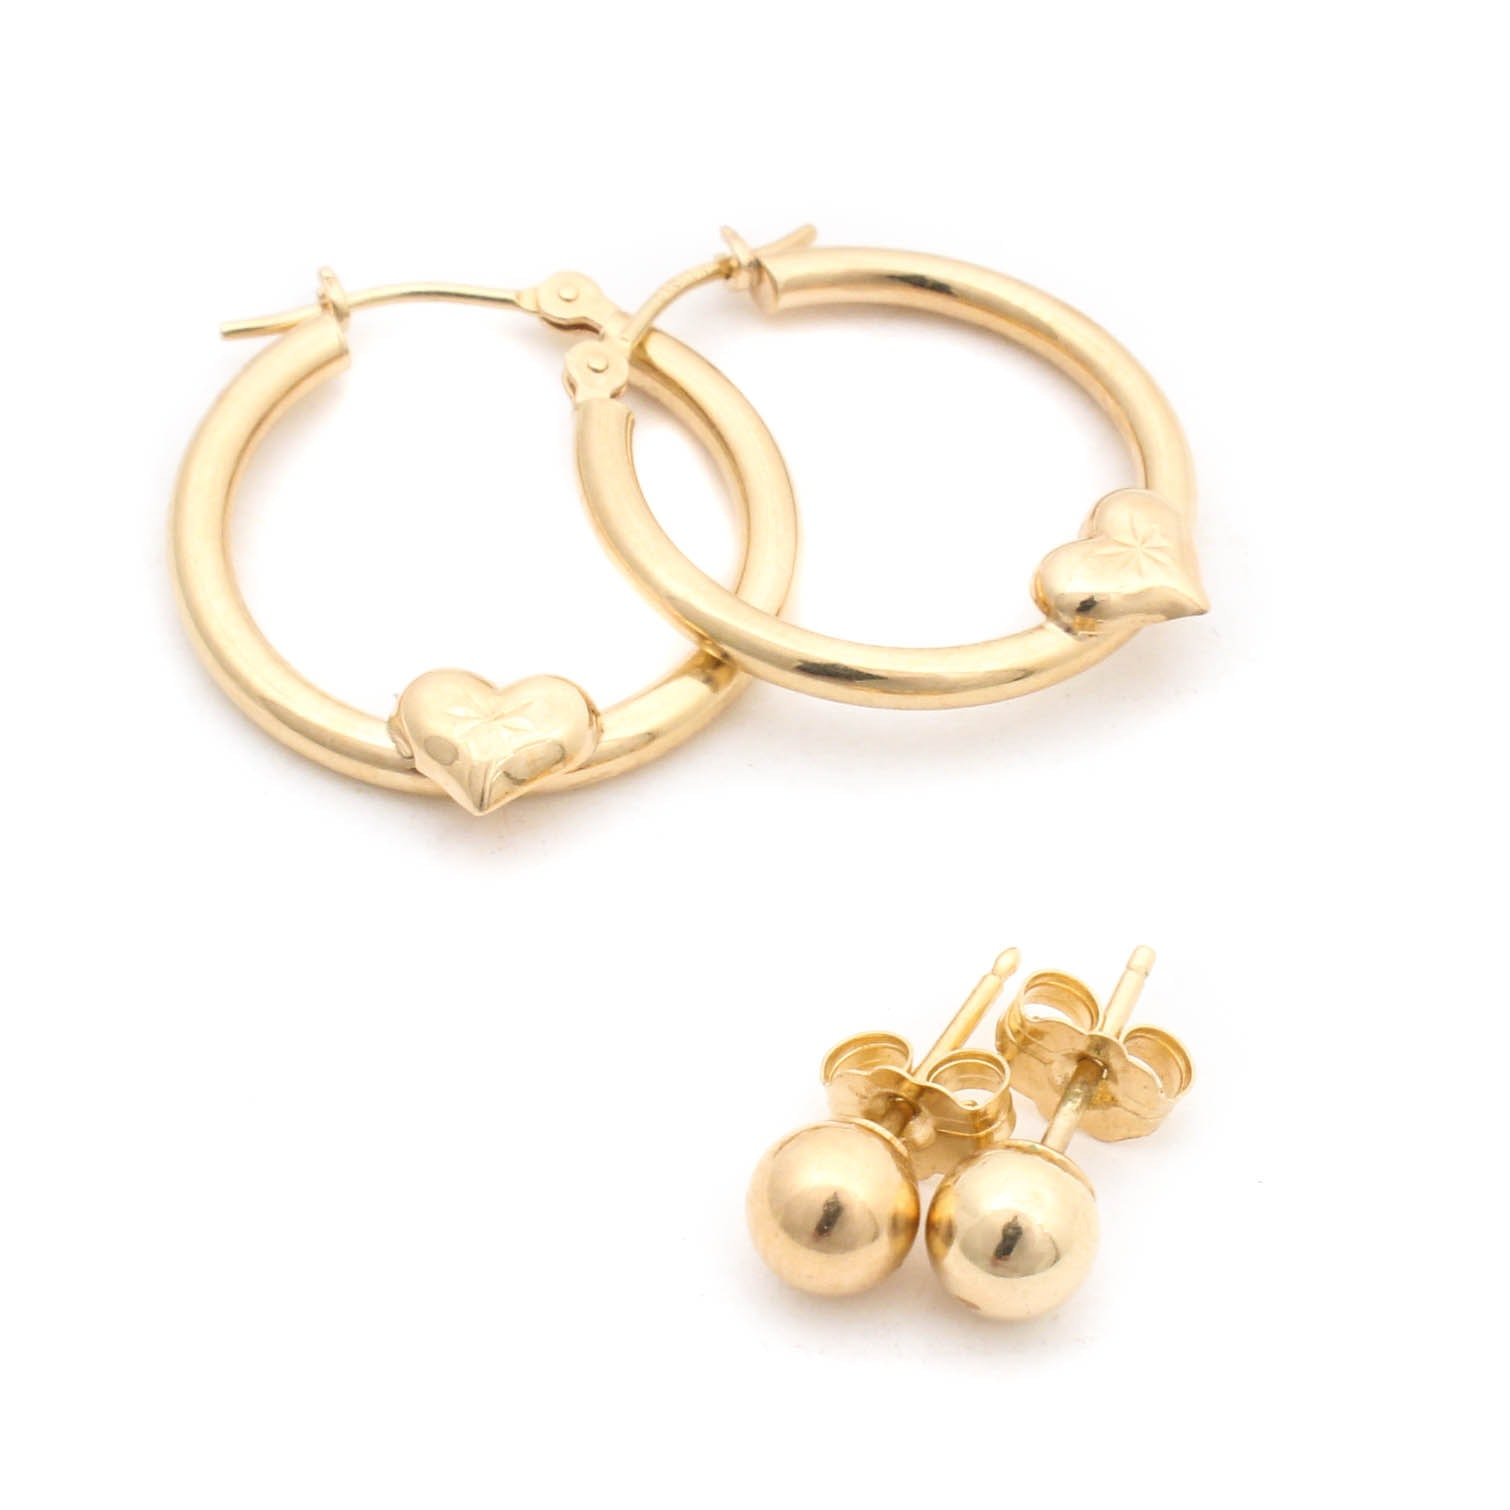 10K Yellow Gold Hoop Earrings and 14K Yellow Gold Ball Studs